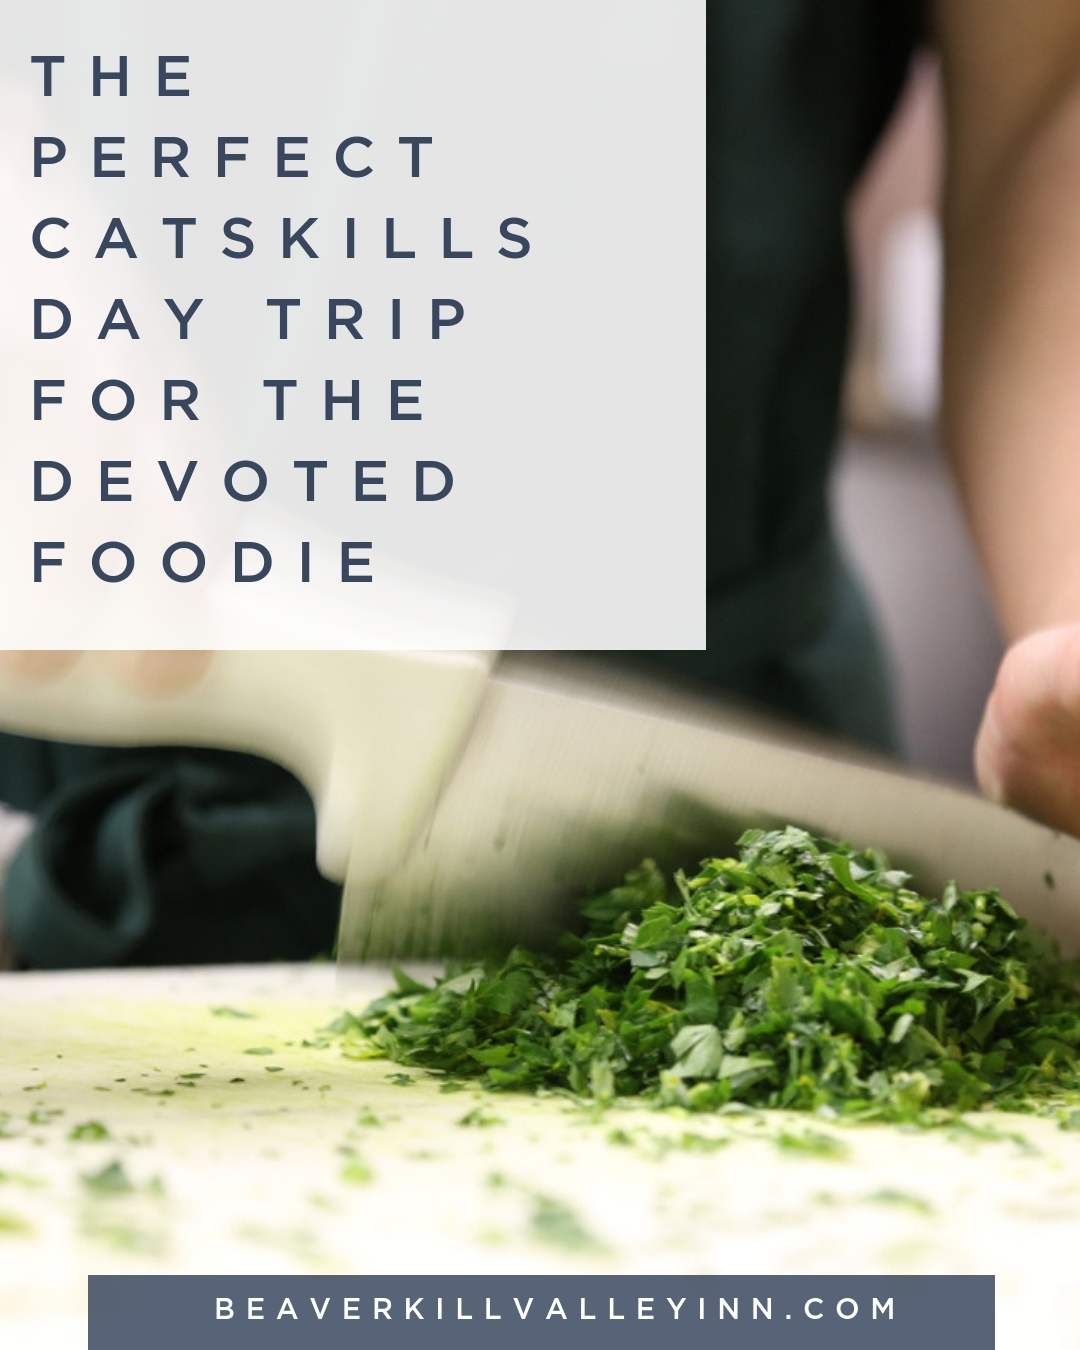 The Perfect Catskills Day Trip for the Devoted Foodie